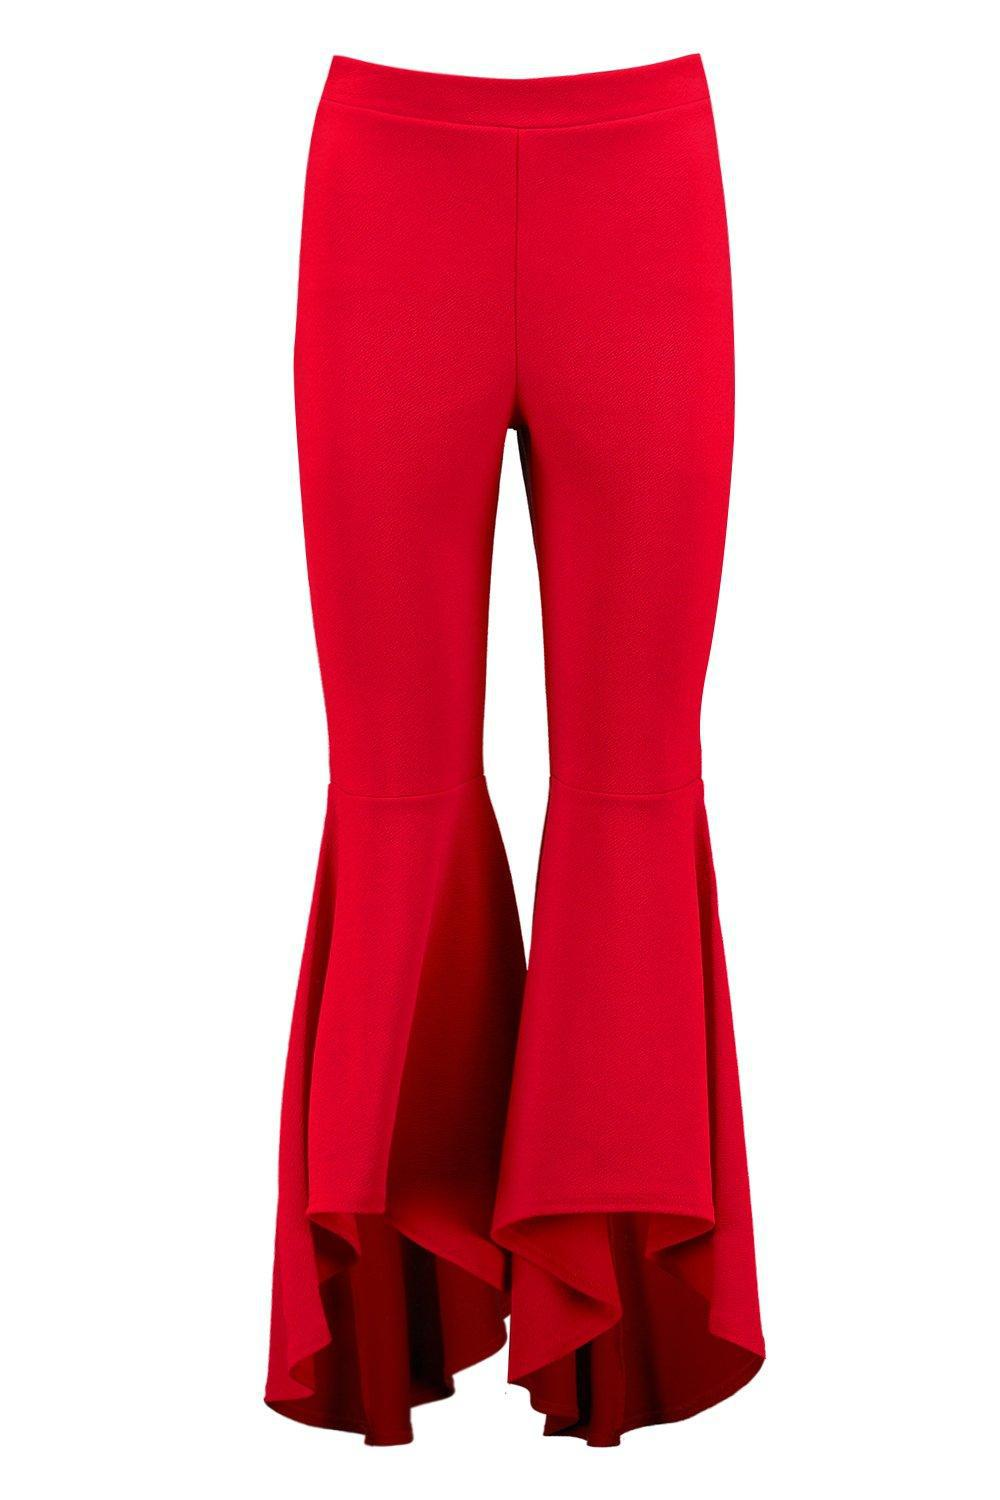 88efcf577713 Boohoo Avah Ruffle Wide Leg Trousers in Red - Lyst